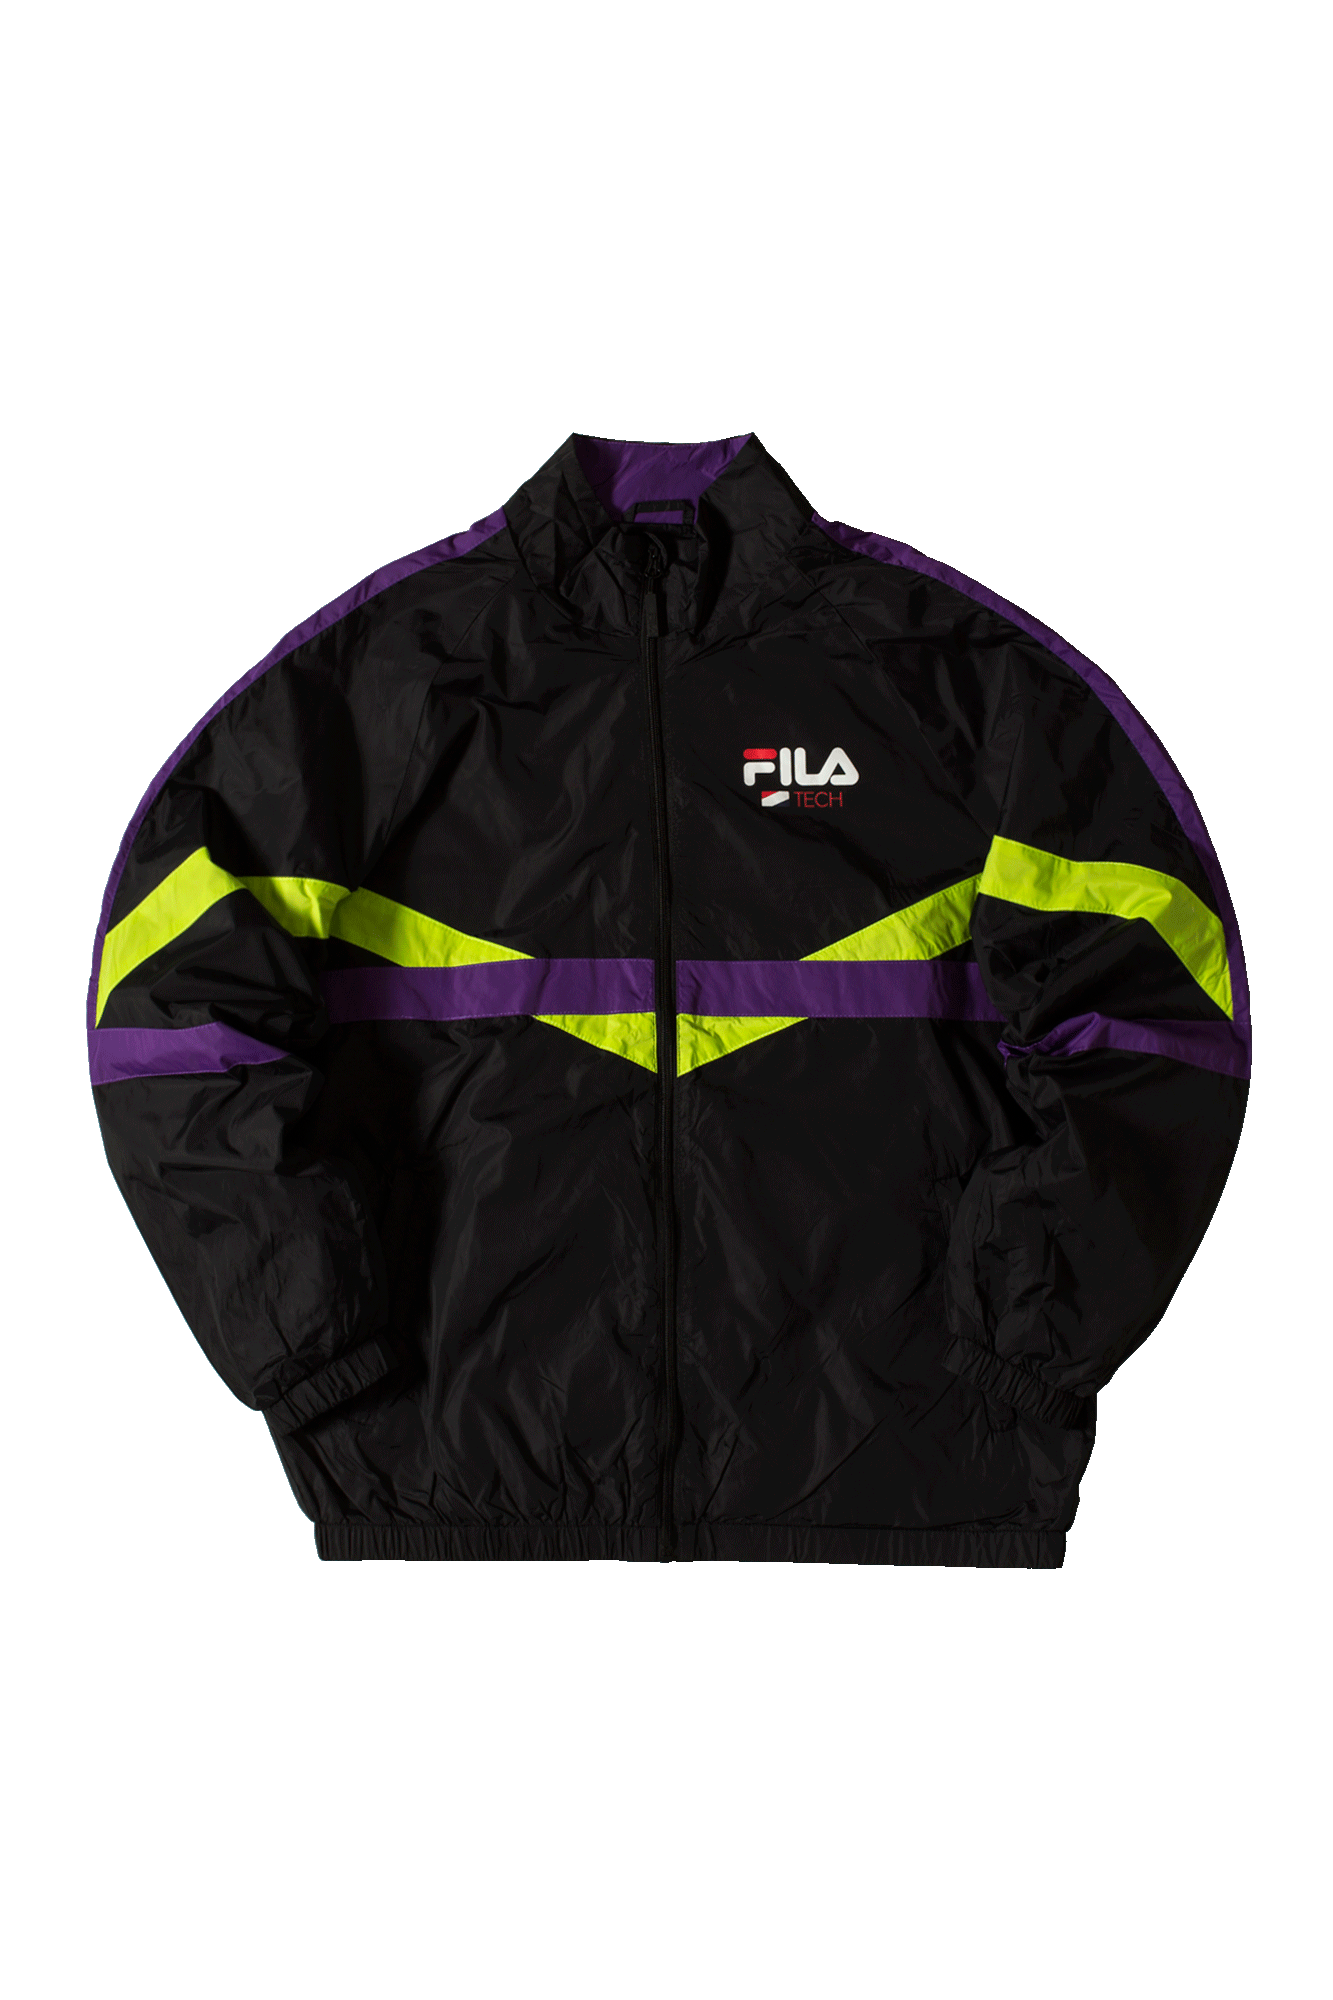 Fila Zip-up sweatshirt Regin Tracktop Black 687242#000#A244#S - One Block Down